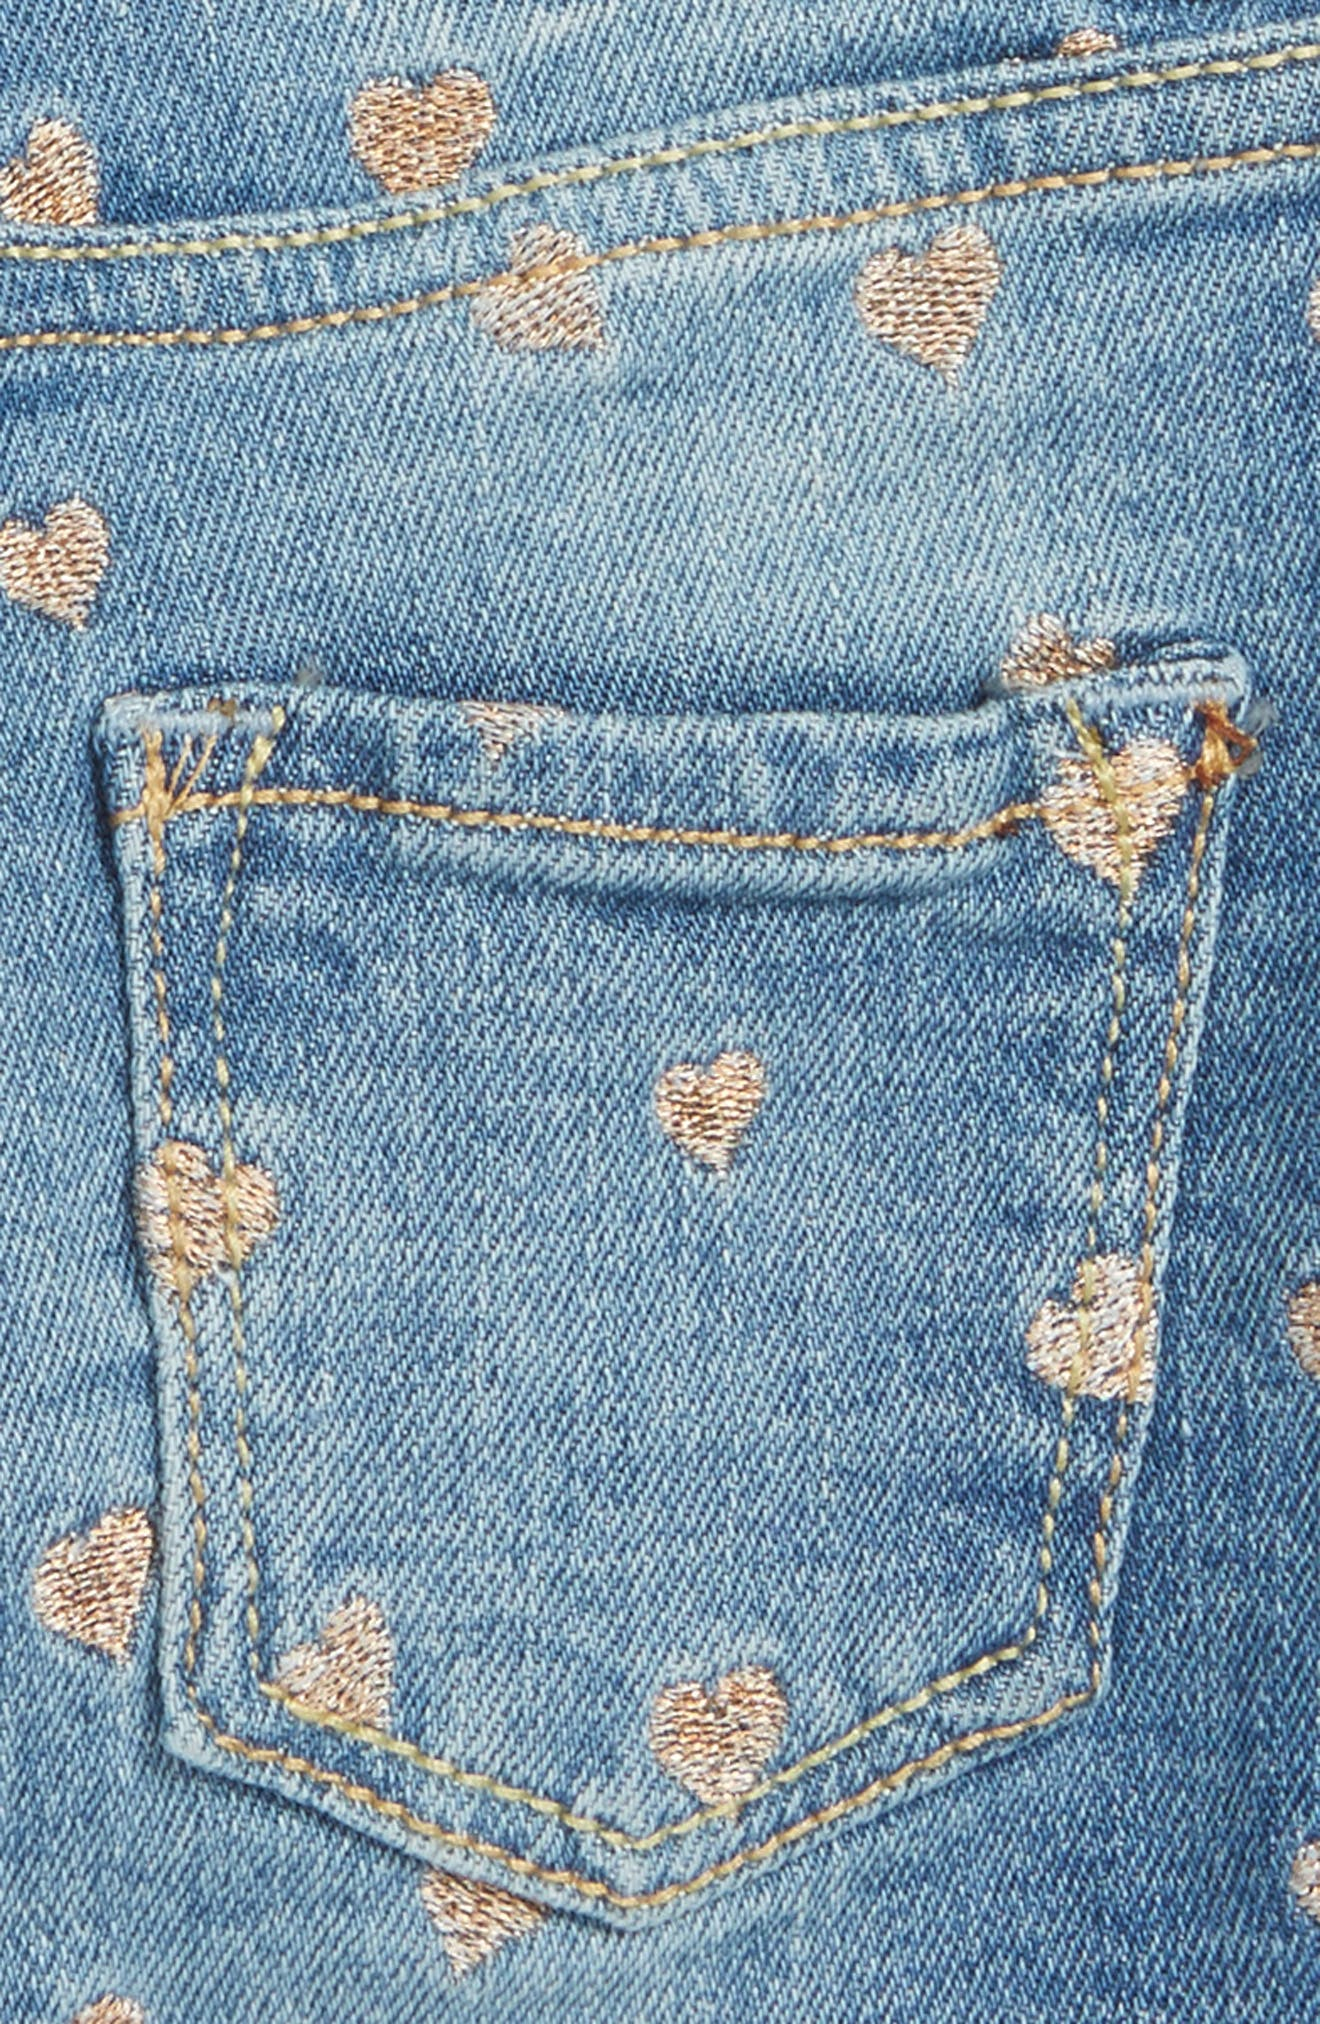 Mini Heart Cutoff Denim Shorts,                             Alternate thumbnail 3, color,                             416